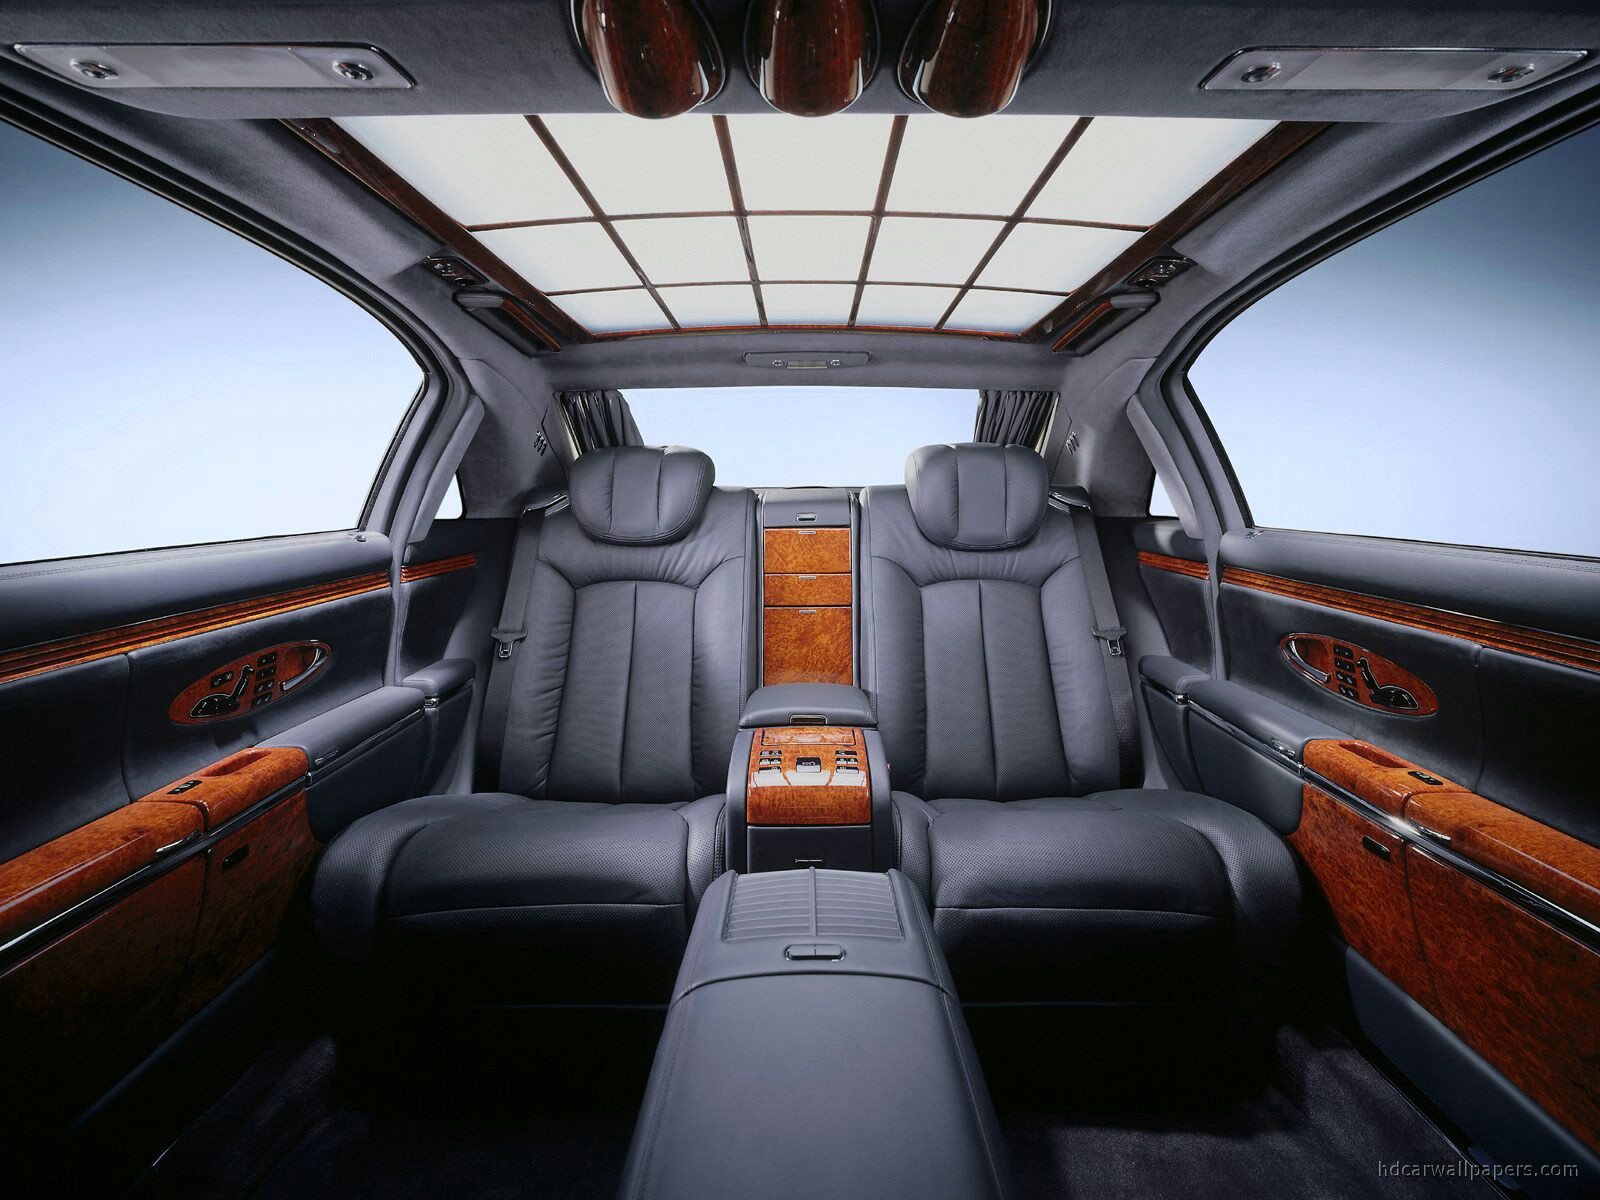 maybach classic interior 3 wallpaper hd car wallpapers id 1094. Black Bedroom Furniture Sets. Home Design Ideas